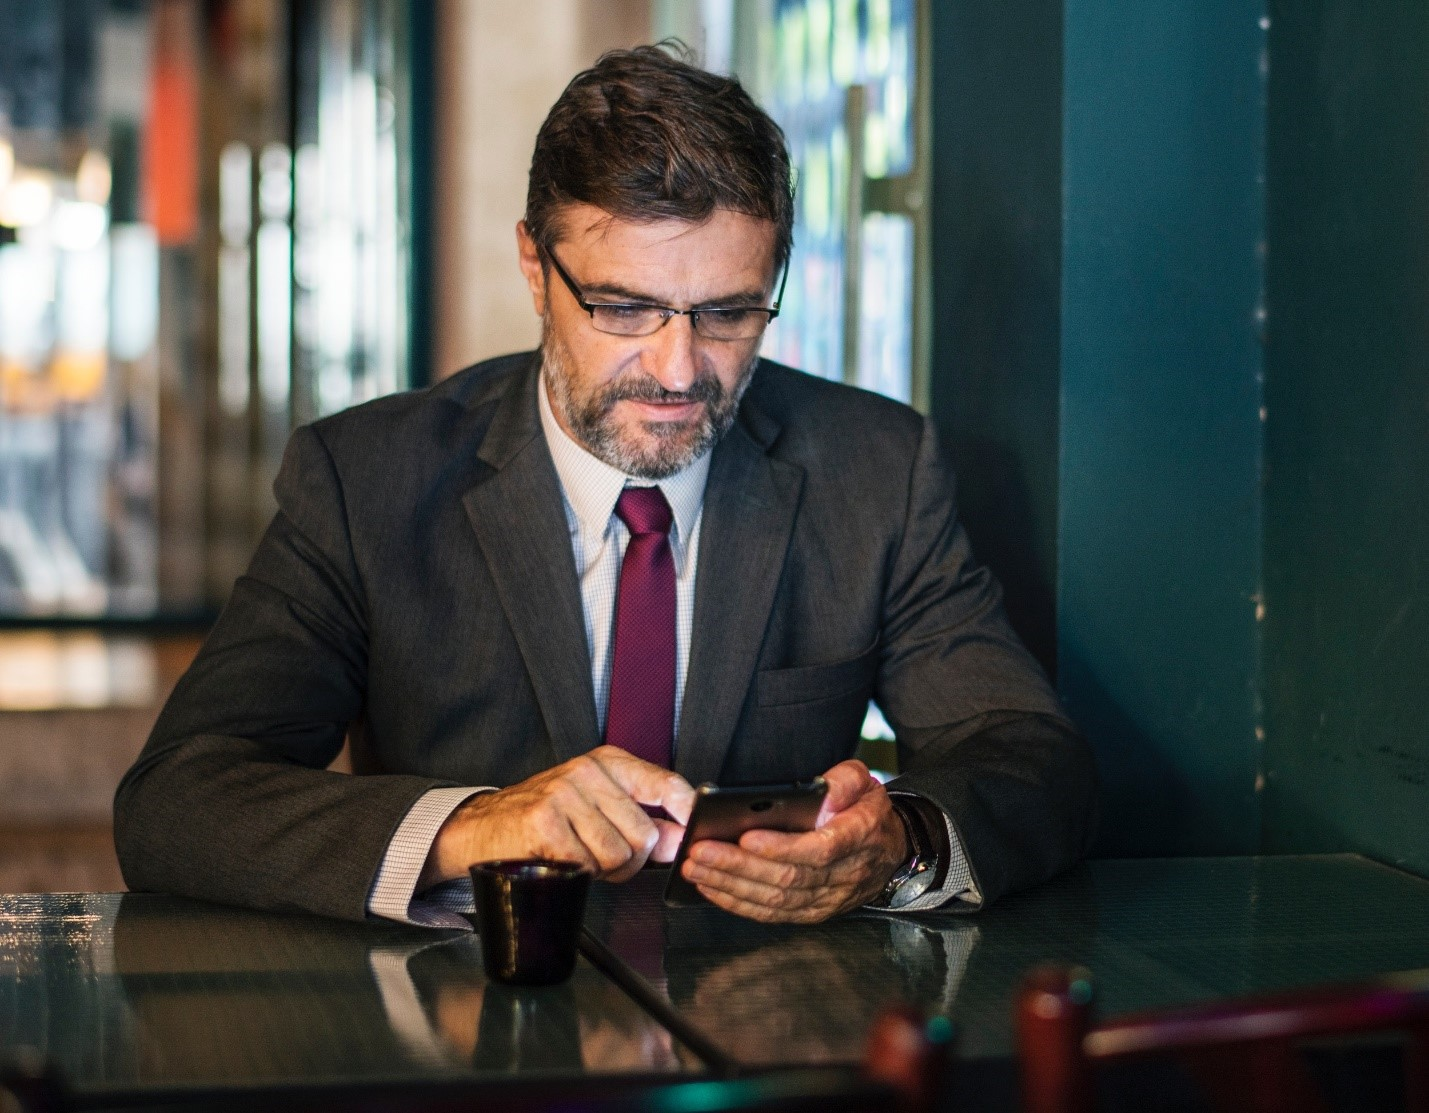 Man in suit searching his phone for advice for finding true love.